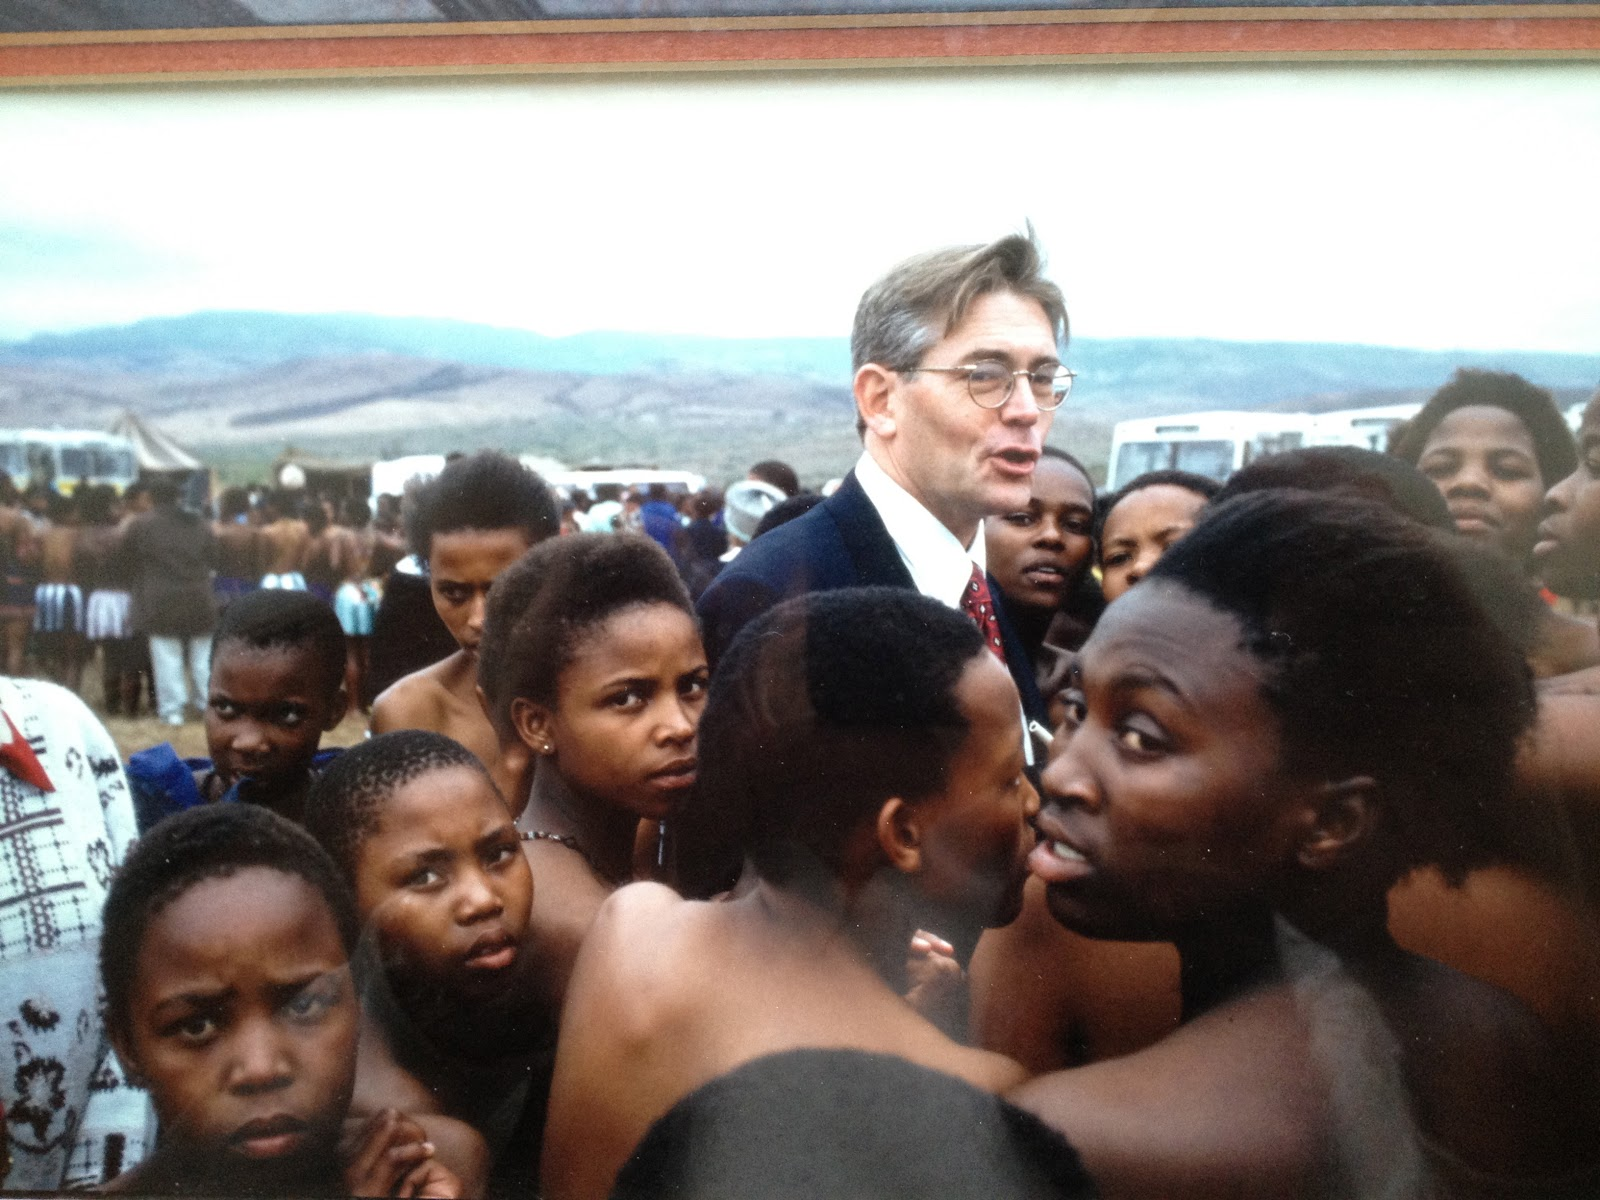 McNeil Interviewing young women at an anti-HIV dance event in Zululand, South Africa in 1998